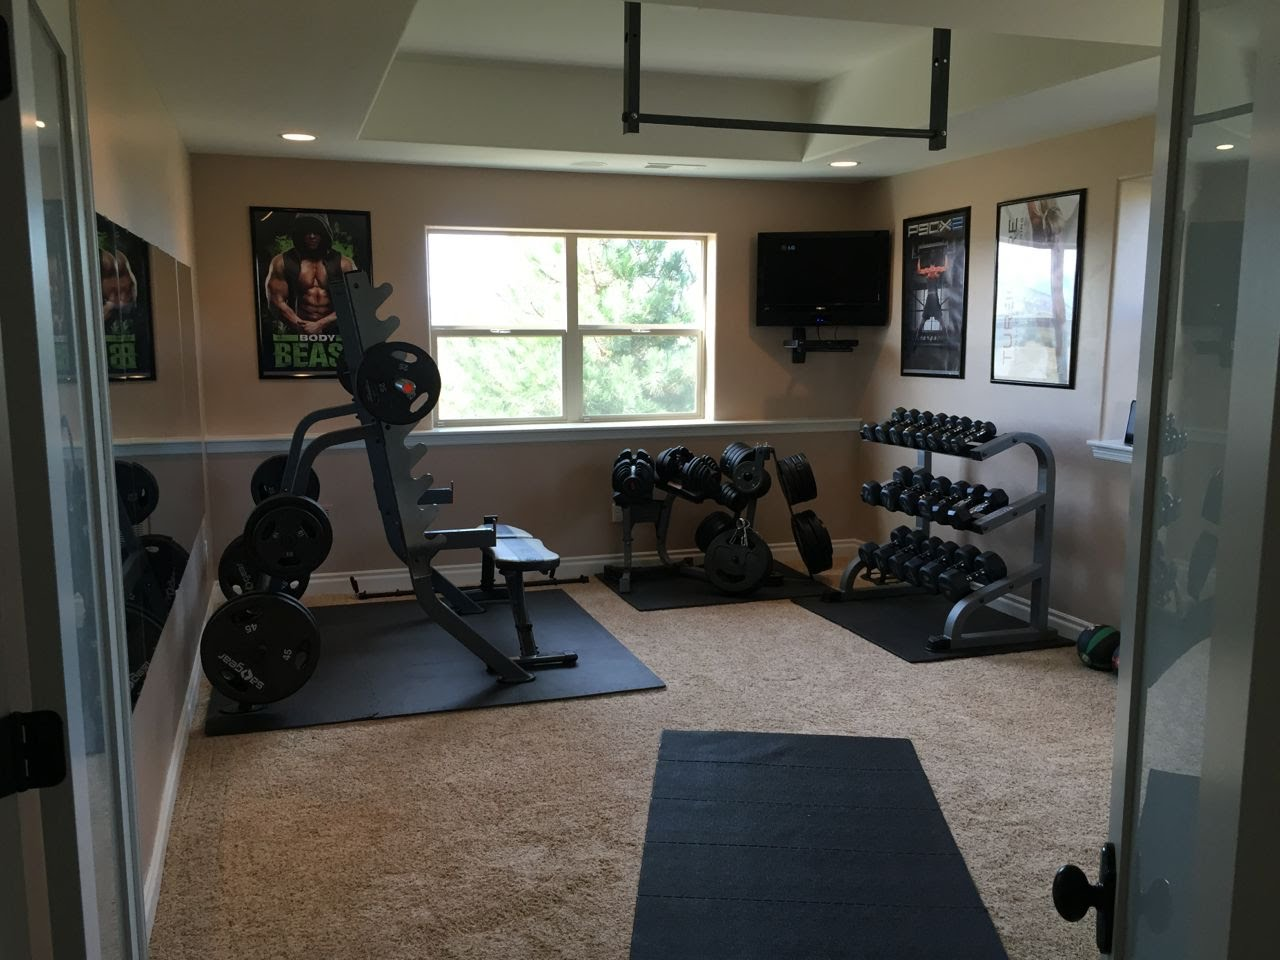 How to Setup Home Gym in BEDROOM